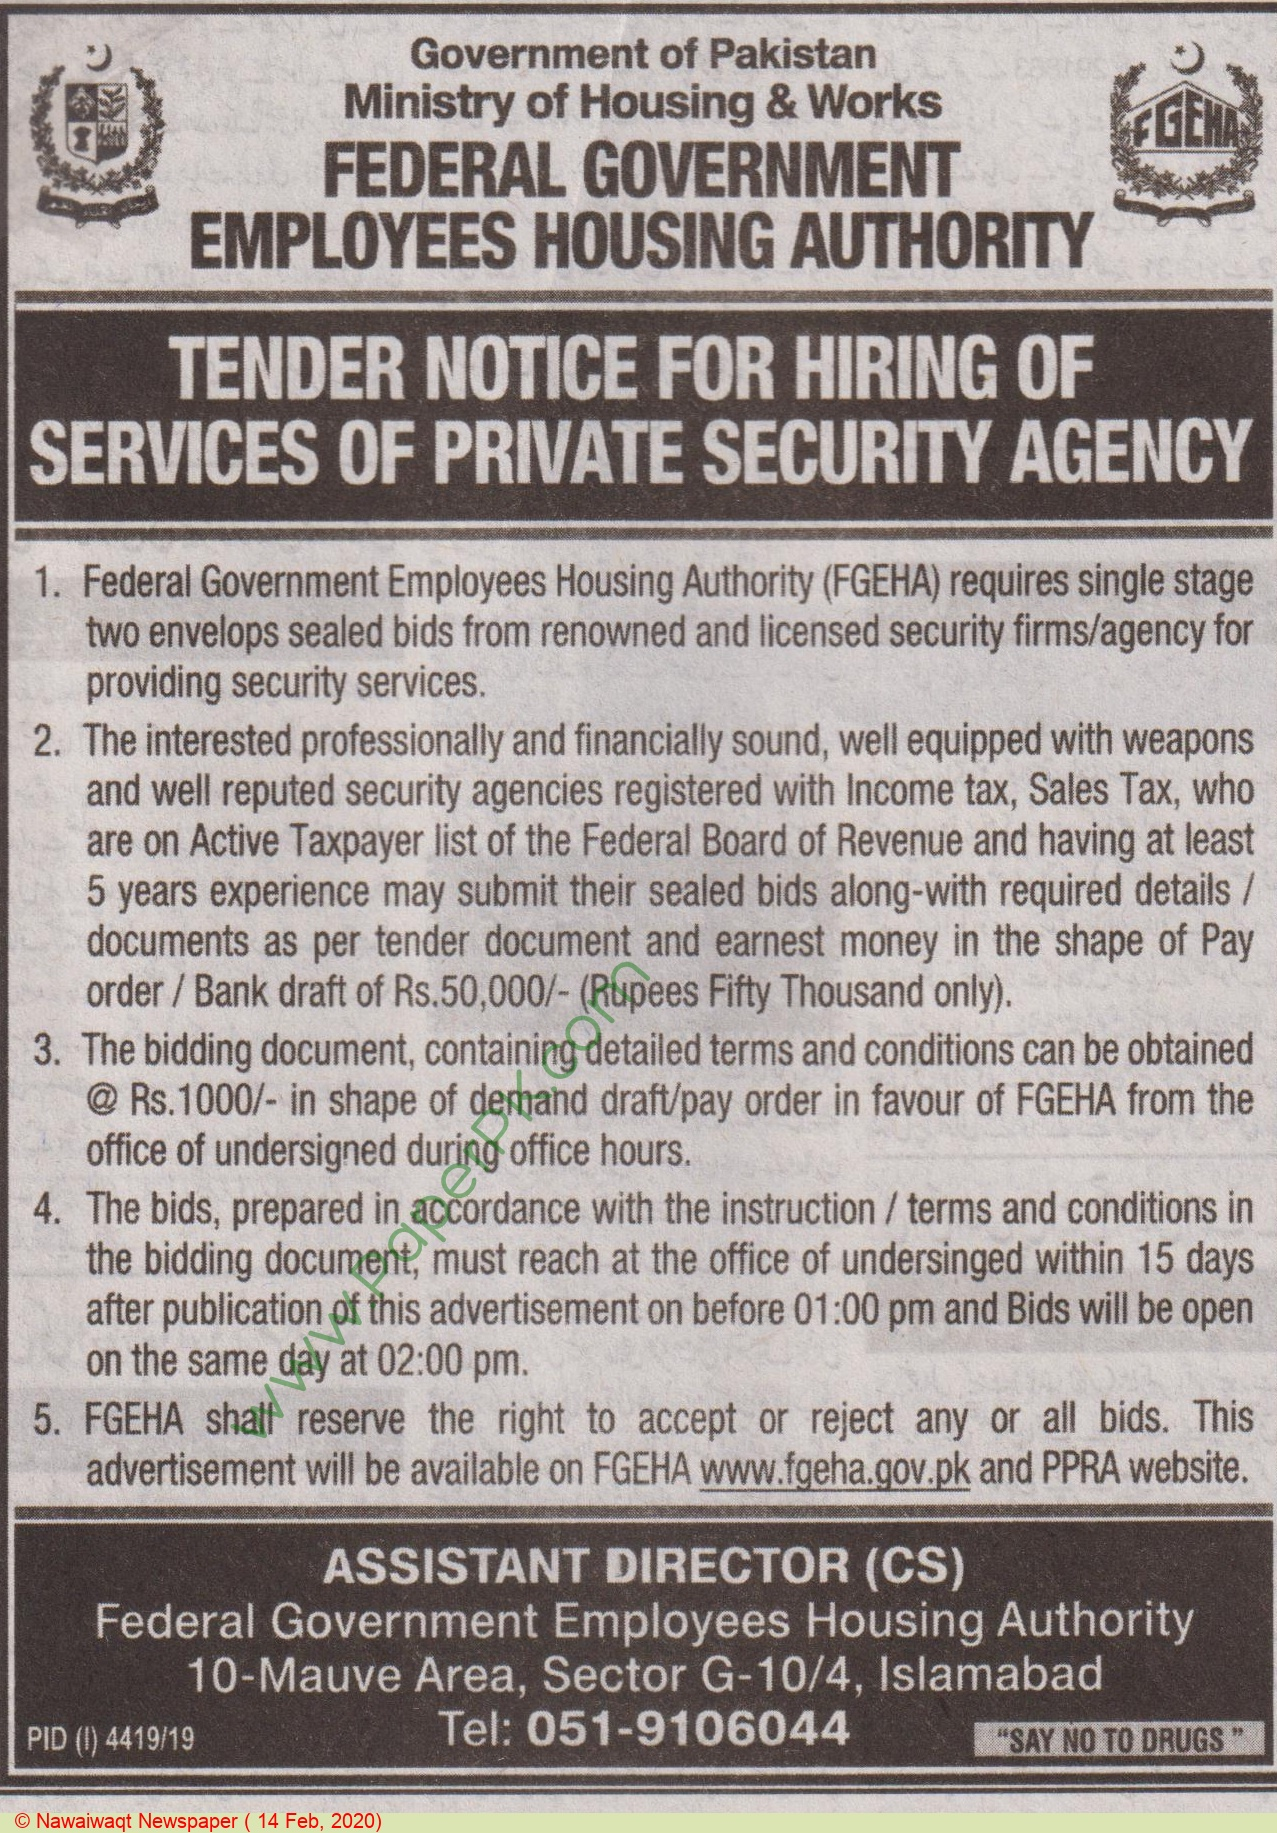 Federal Government Employees Housing Authority Islamabad Tender Notice